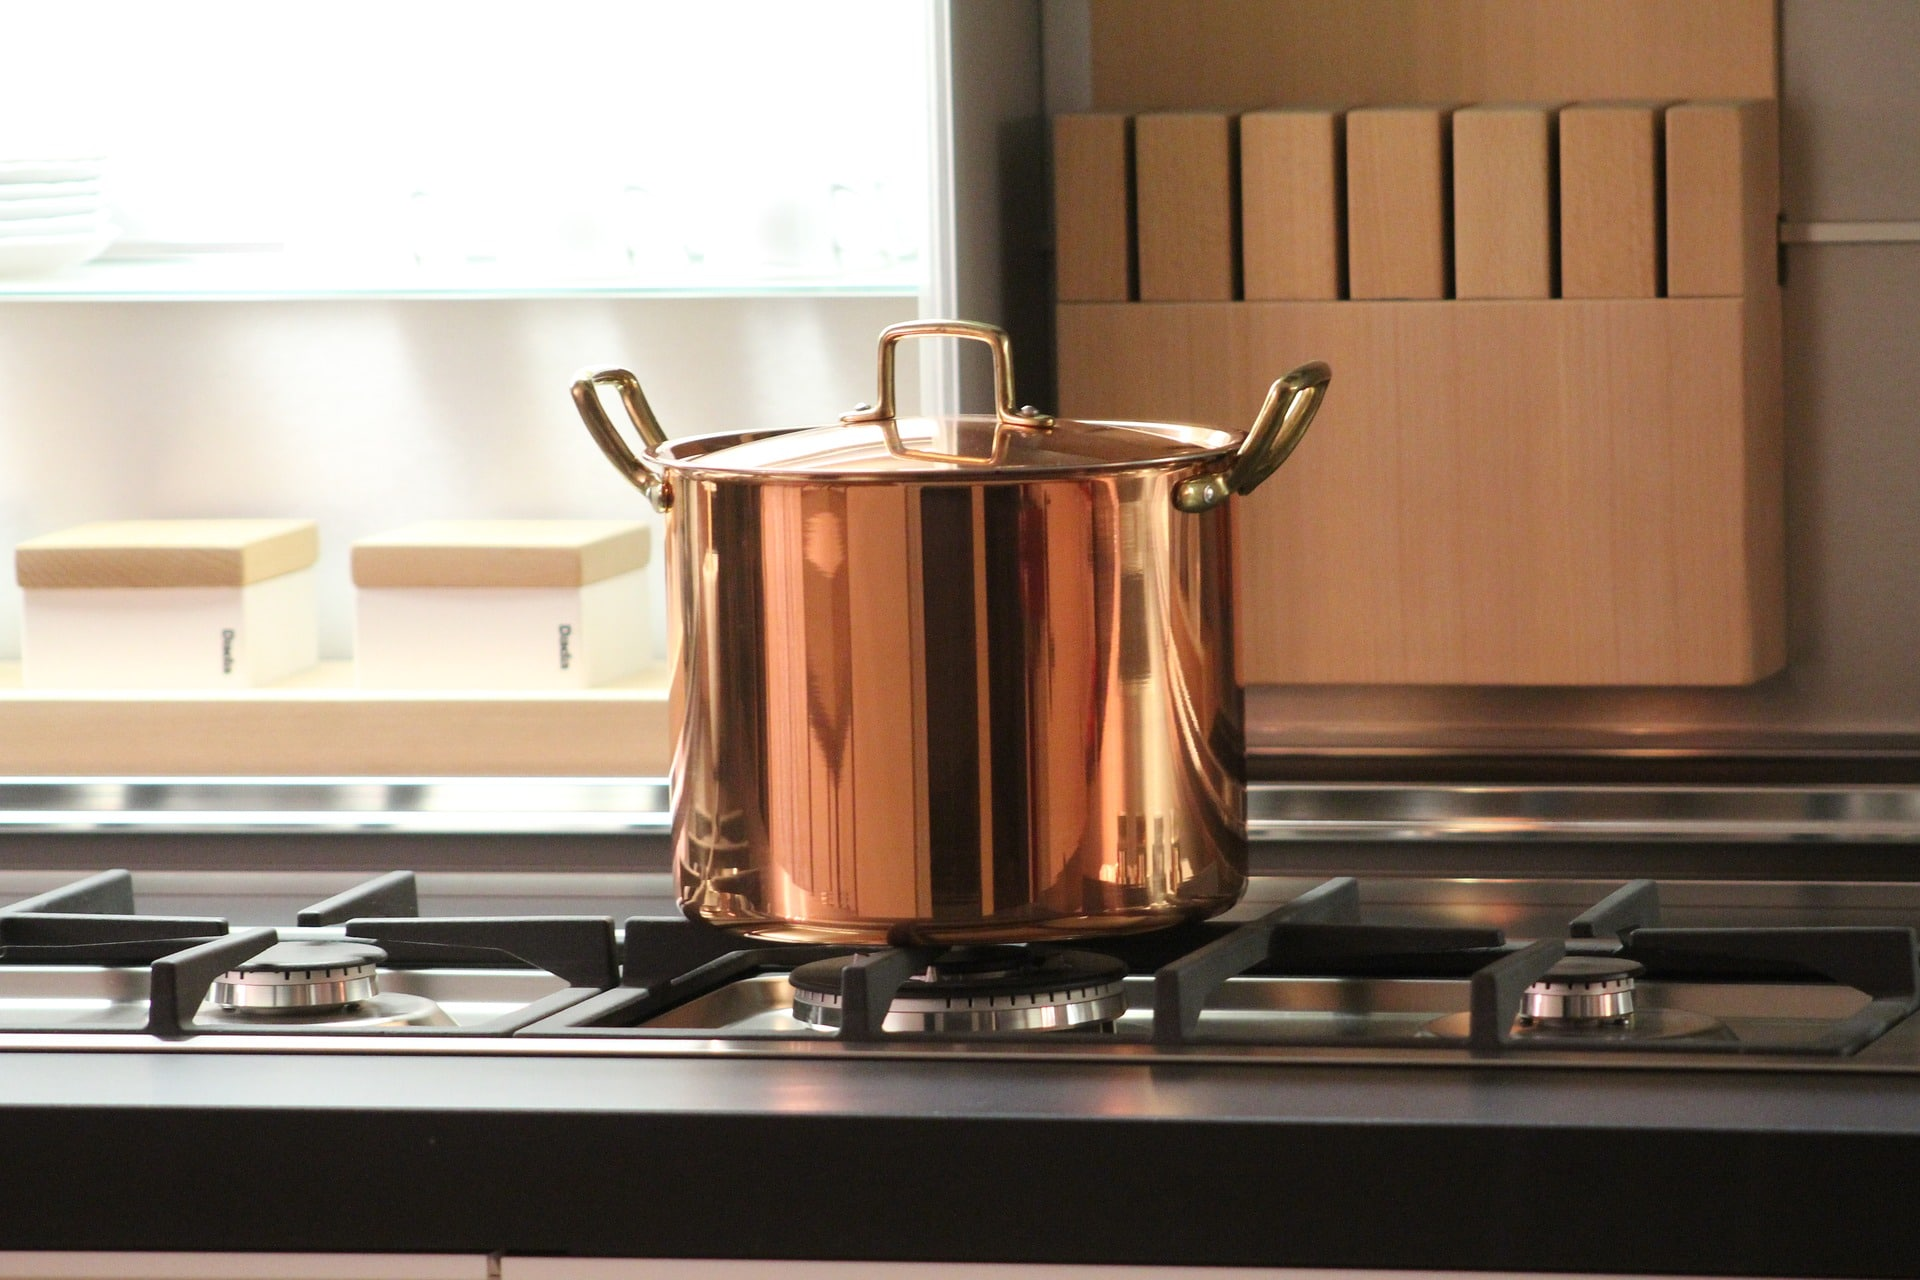 steel stockpot, stainless steel stockpot